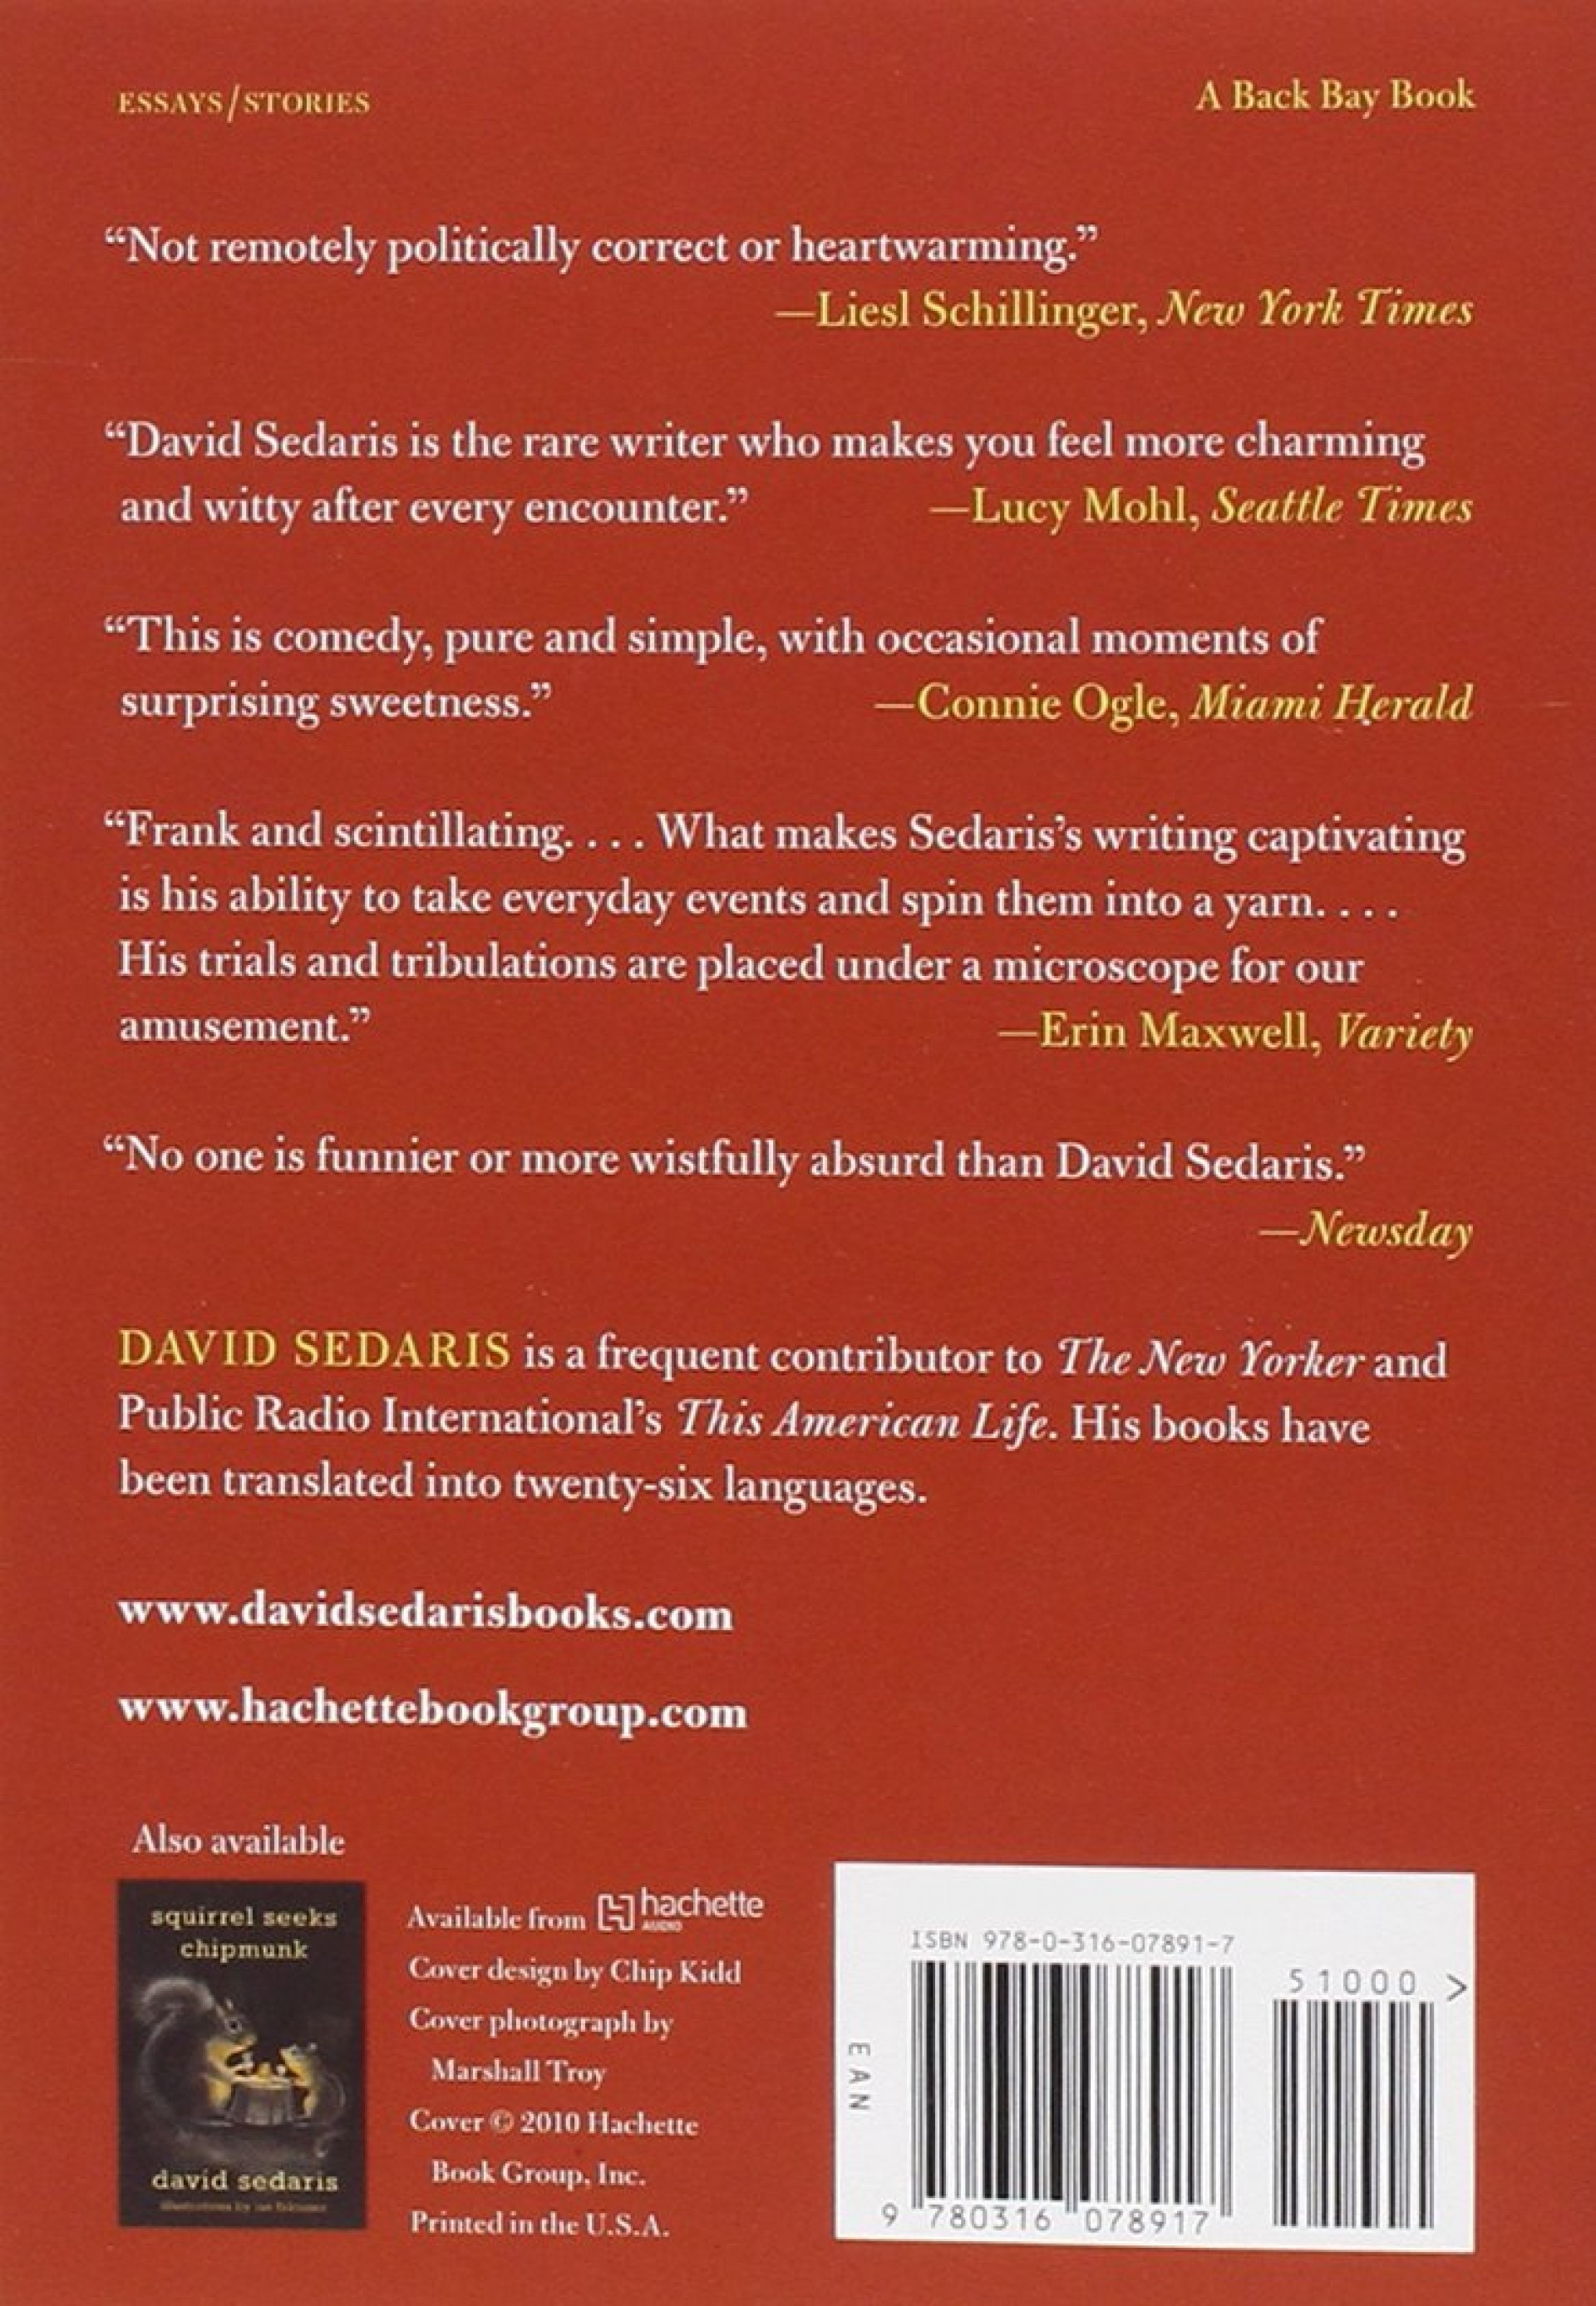 016 David Sedaris Essays Essay Example Fascinating New Yorker Calypso 1920